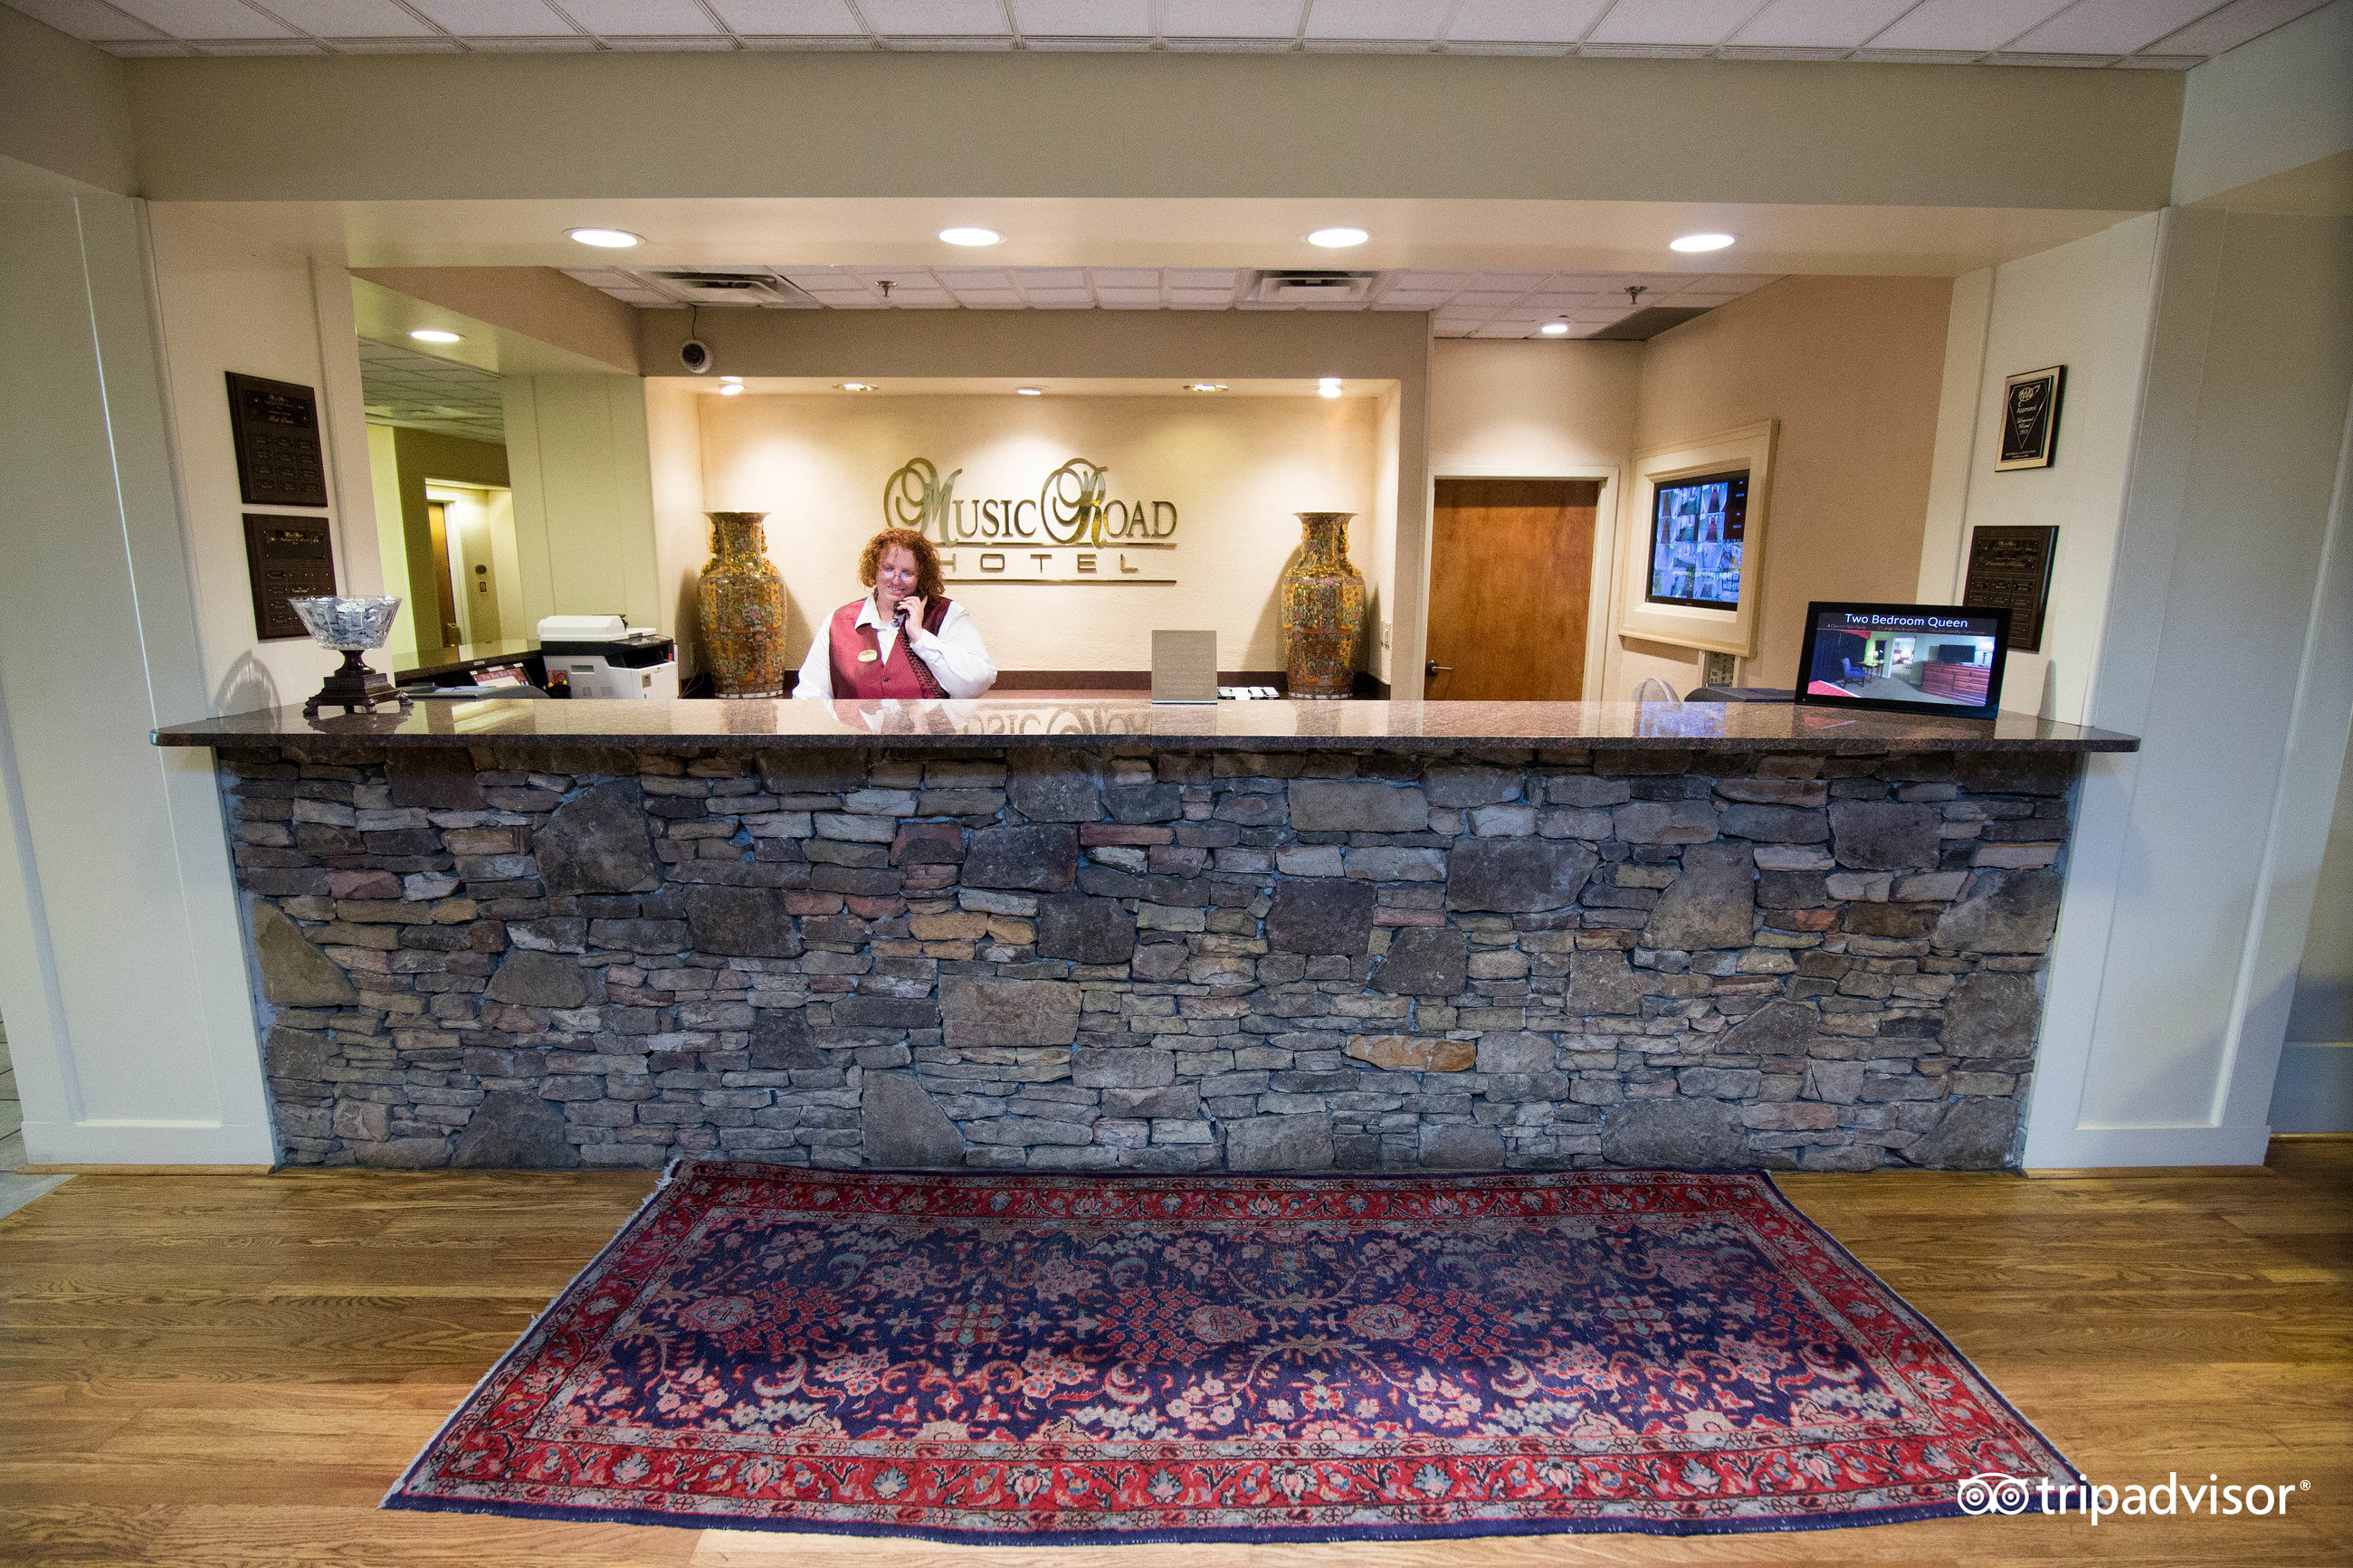 Music Road Resort Hotel  Pigeon Forge  TN  2018 Review   Family Vacation  Critic. Music Road Resort Hotel  Pigeon Forge  TN  2018 Review   Family